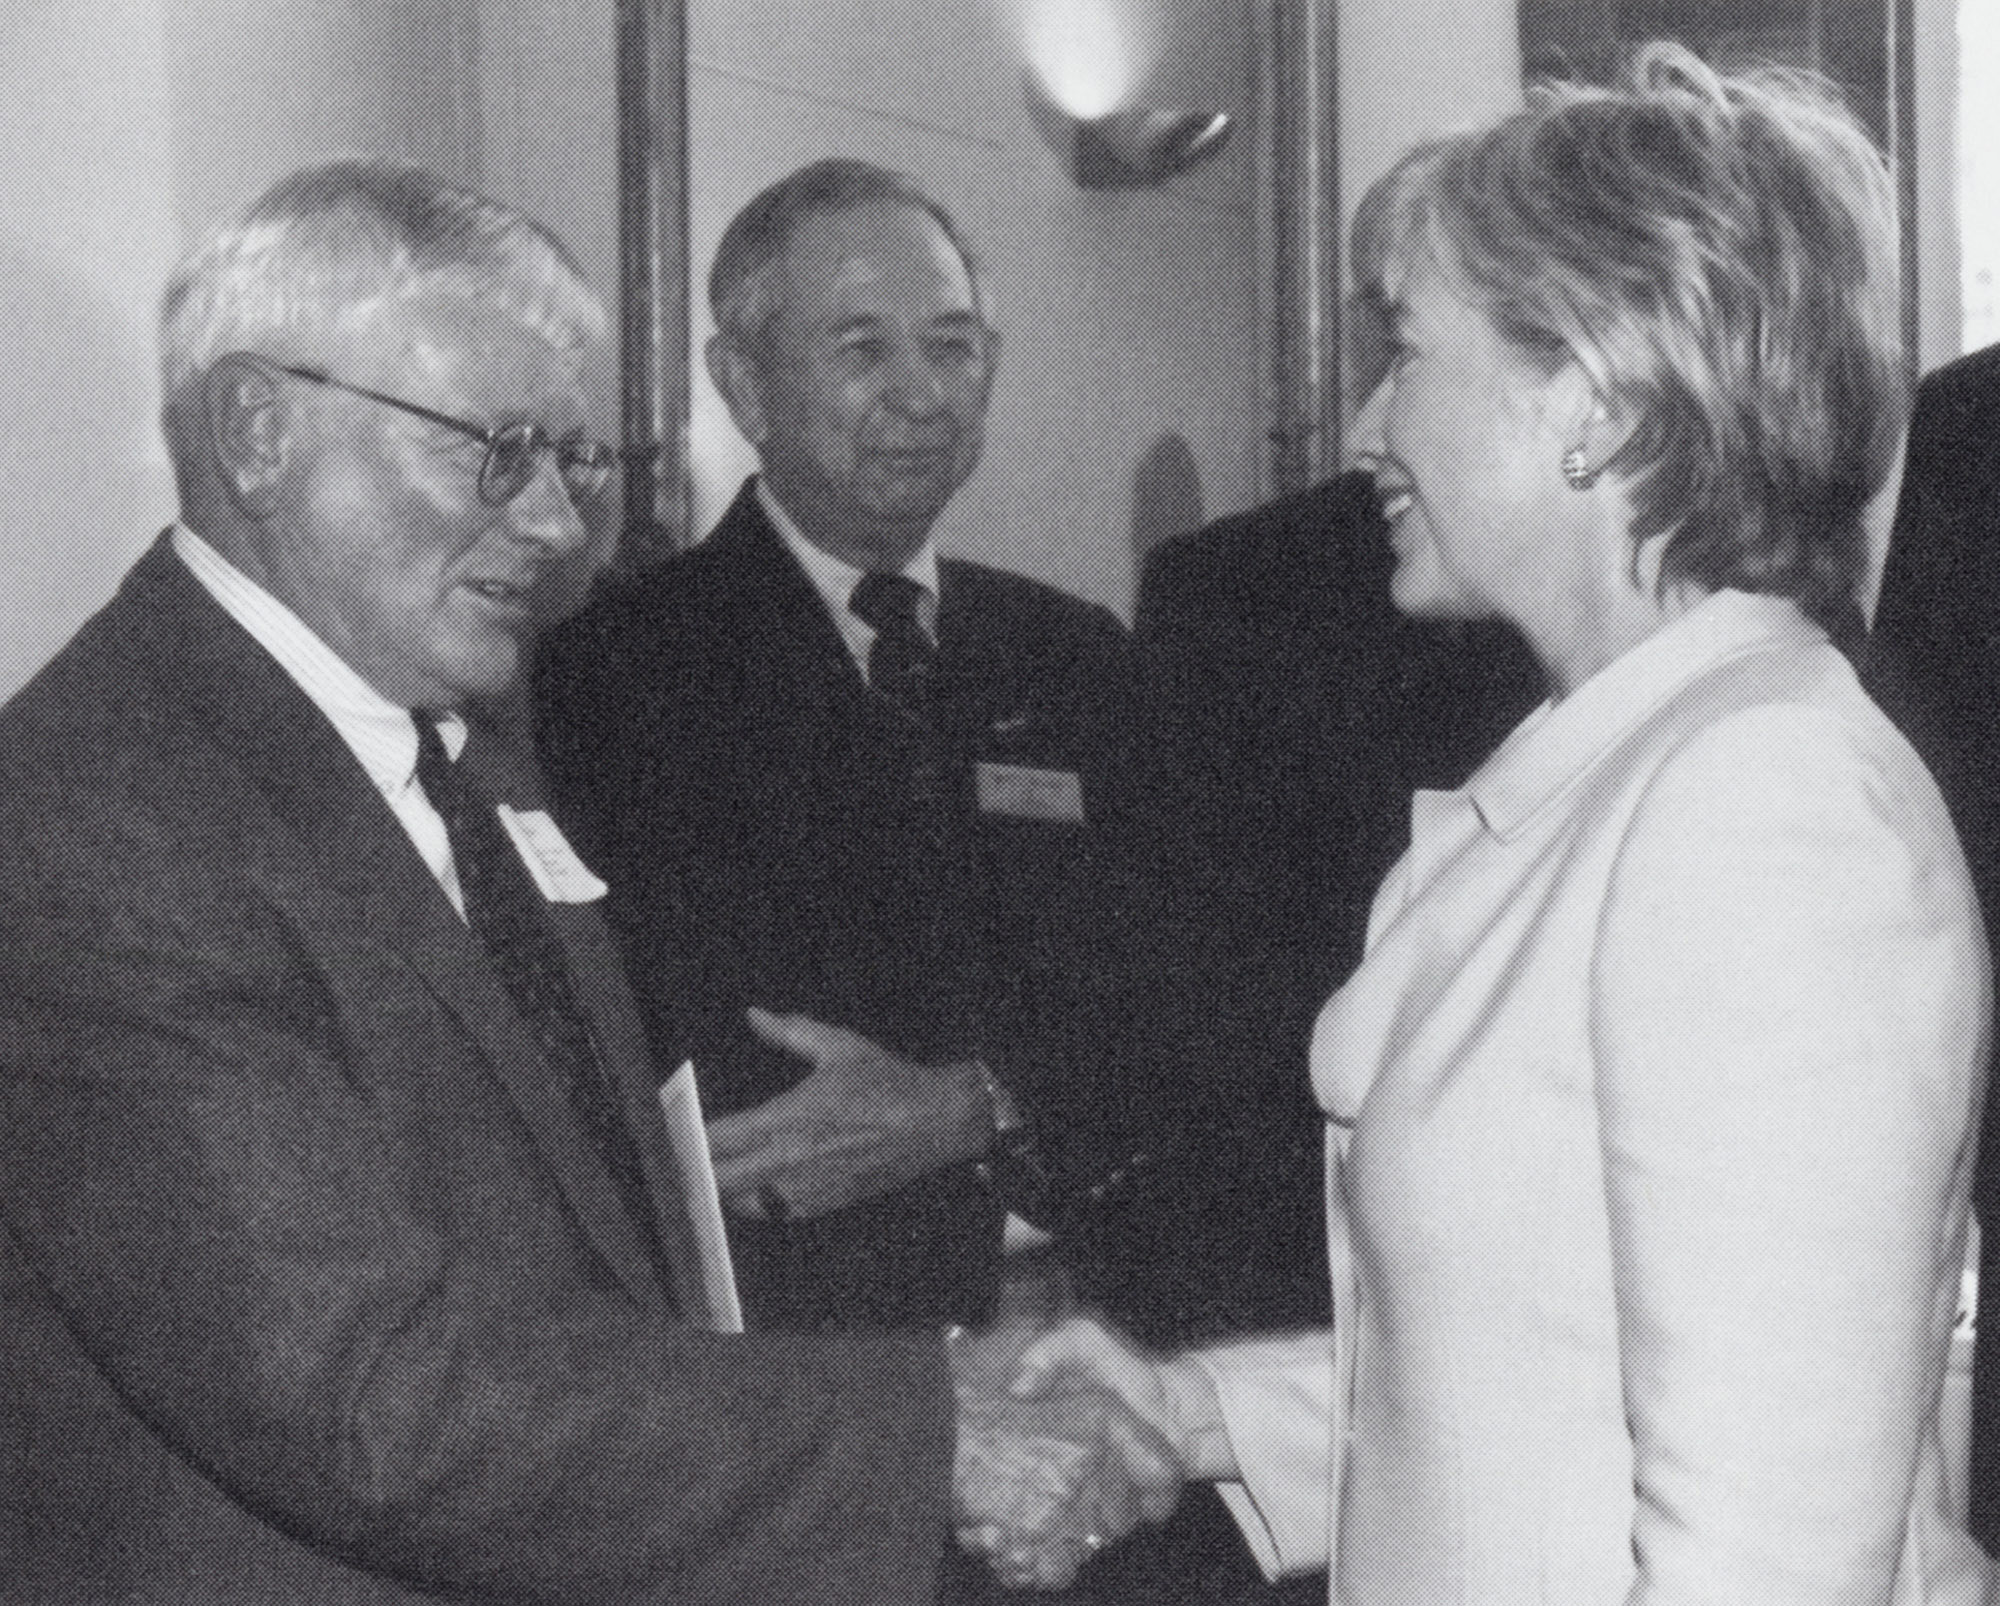 Hillary Clinton shaking hands with campus dignitaries